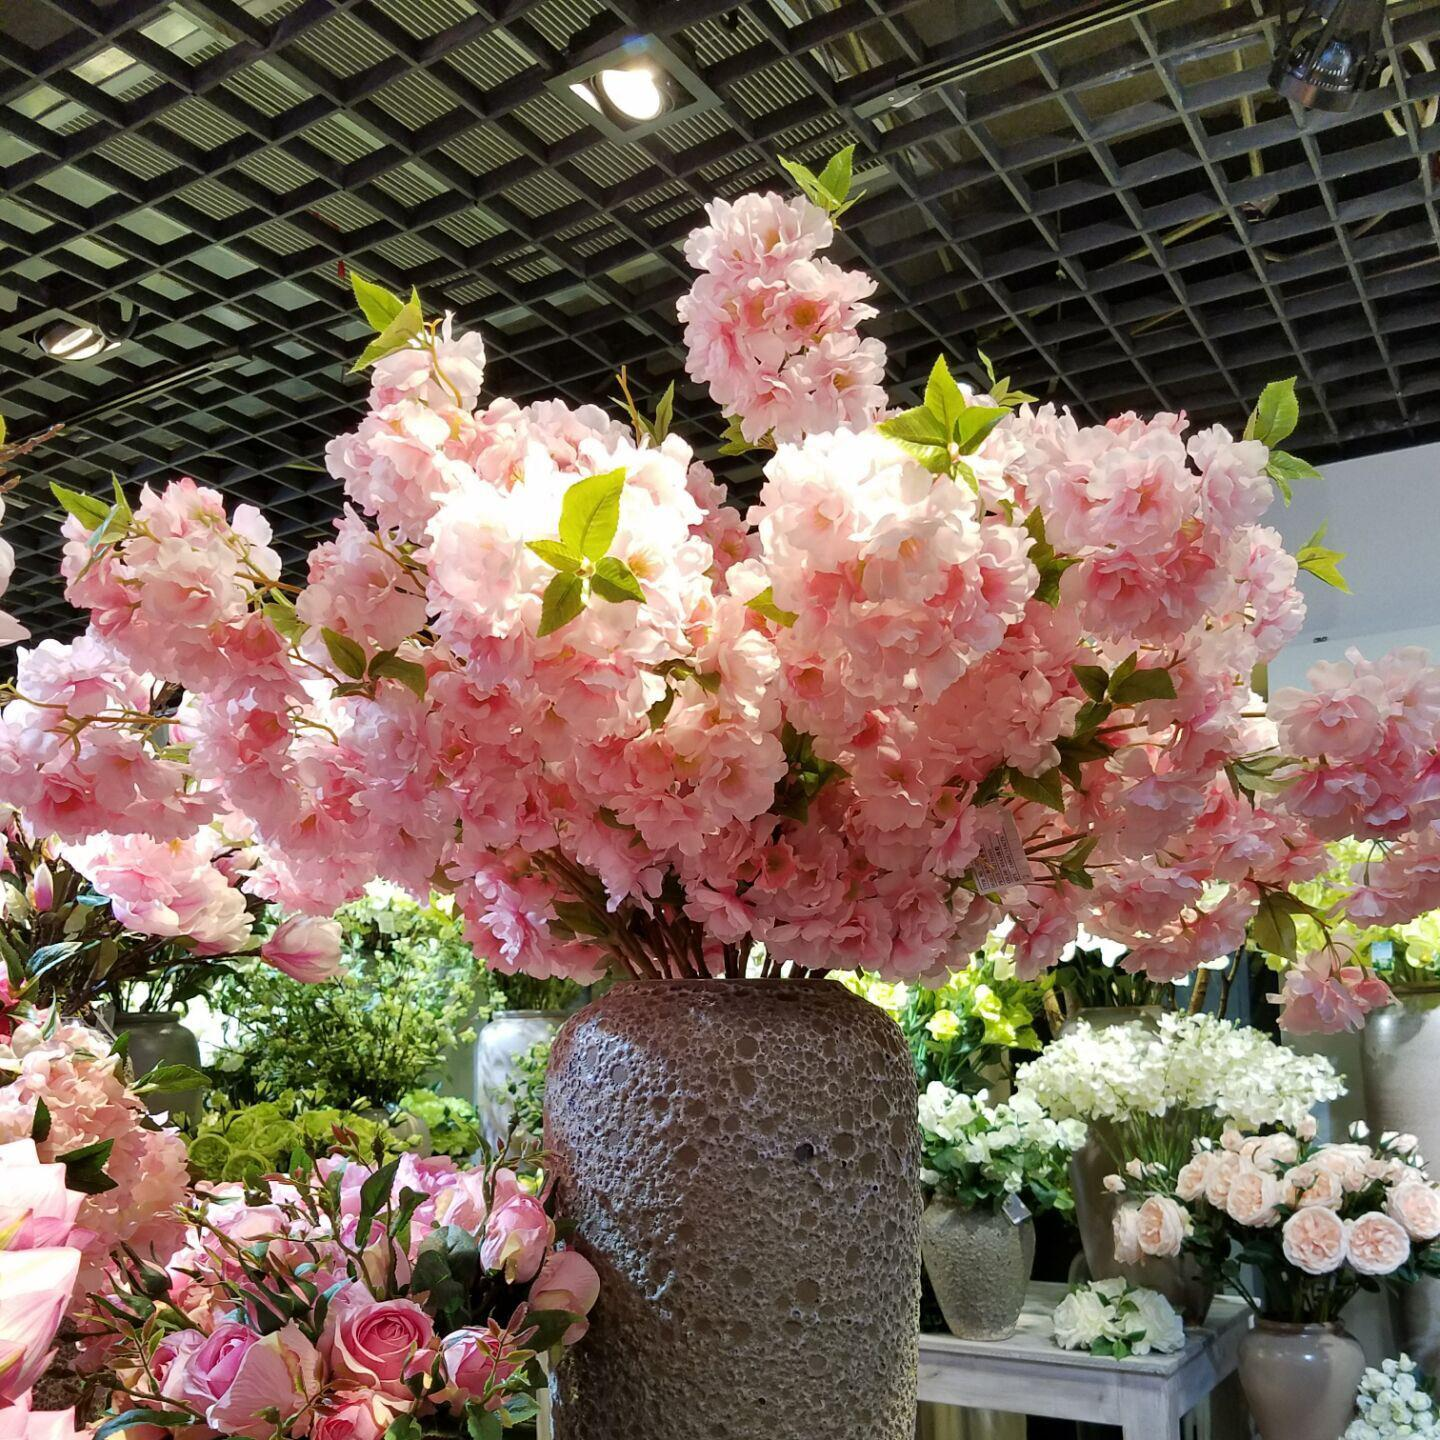 Simulation peach blossom branch plum cherry blossom flowers, silk flowers dried flowers floral landing sitting room decoration decoration during the Spring Festival